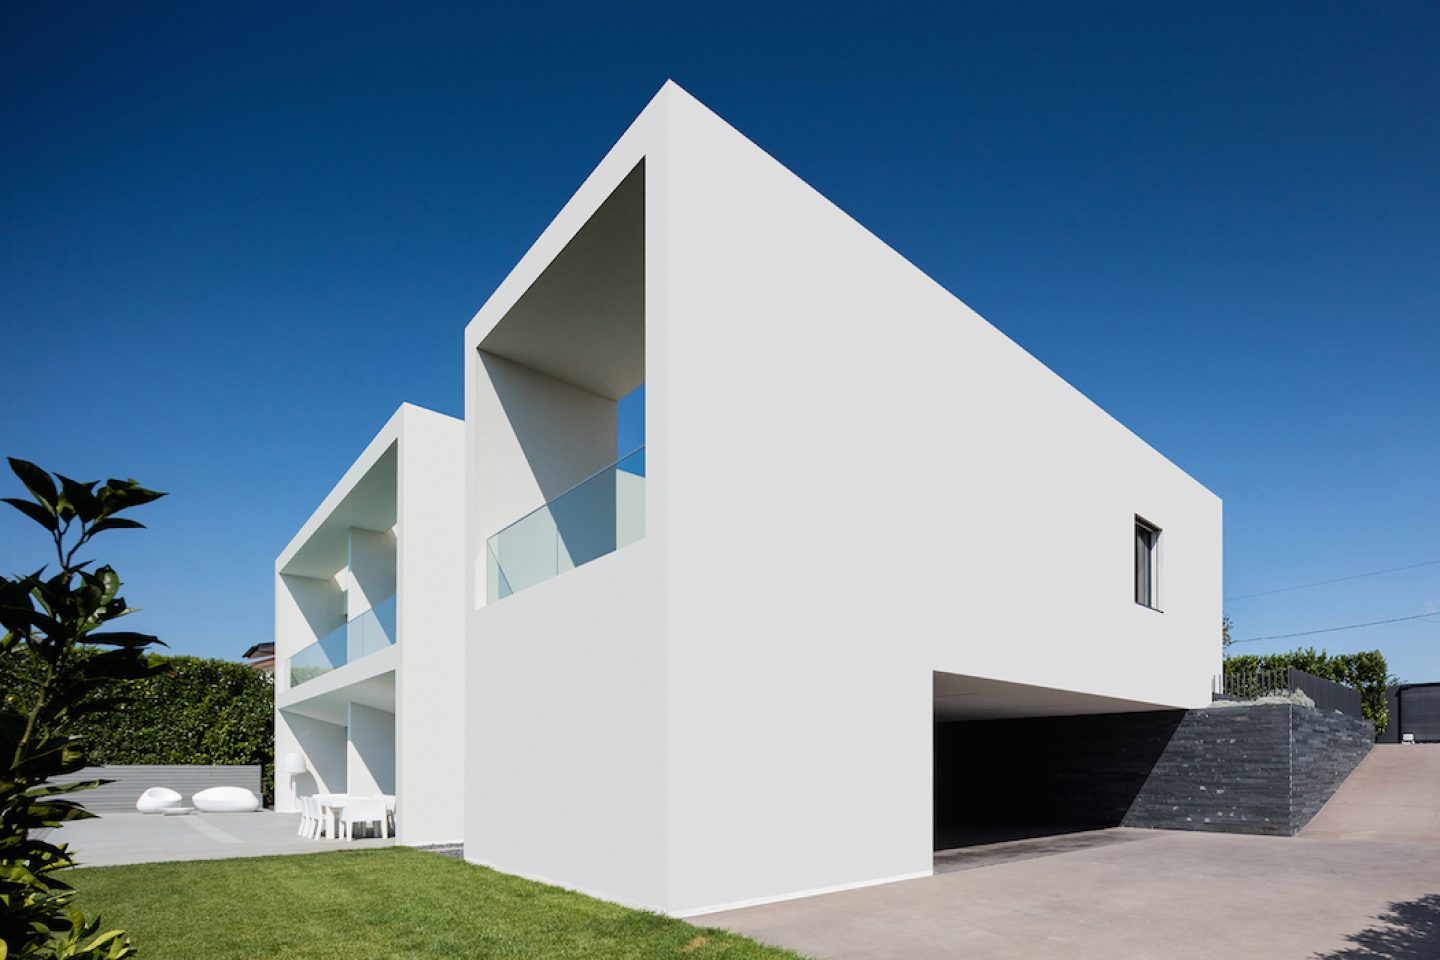 Vila do Conde House - Raulino Arquitecto (02)